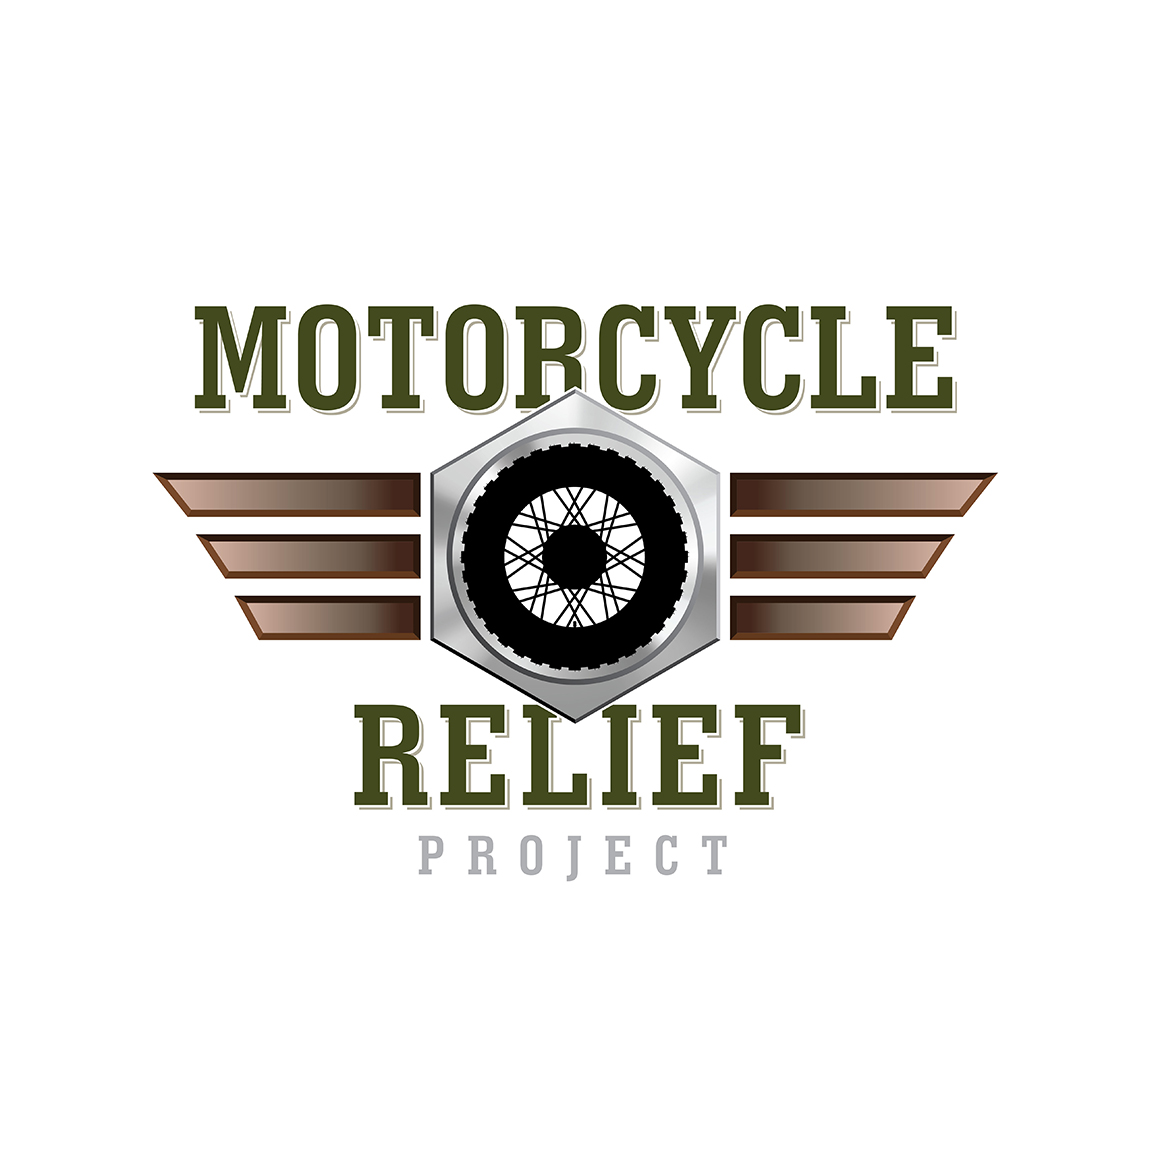 Motorcycle Relief Project BMW GS Adventure Riding PTSD Veterans